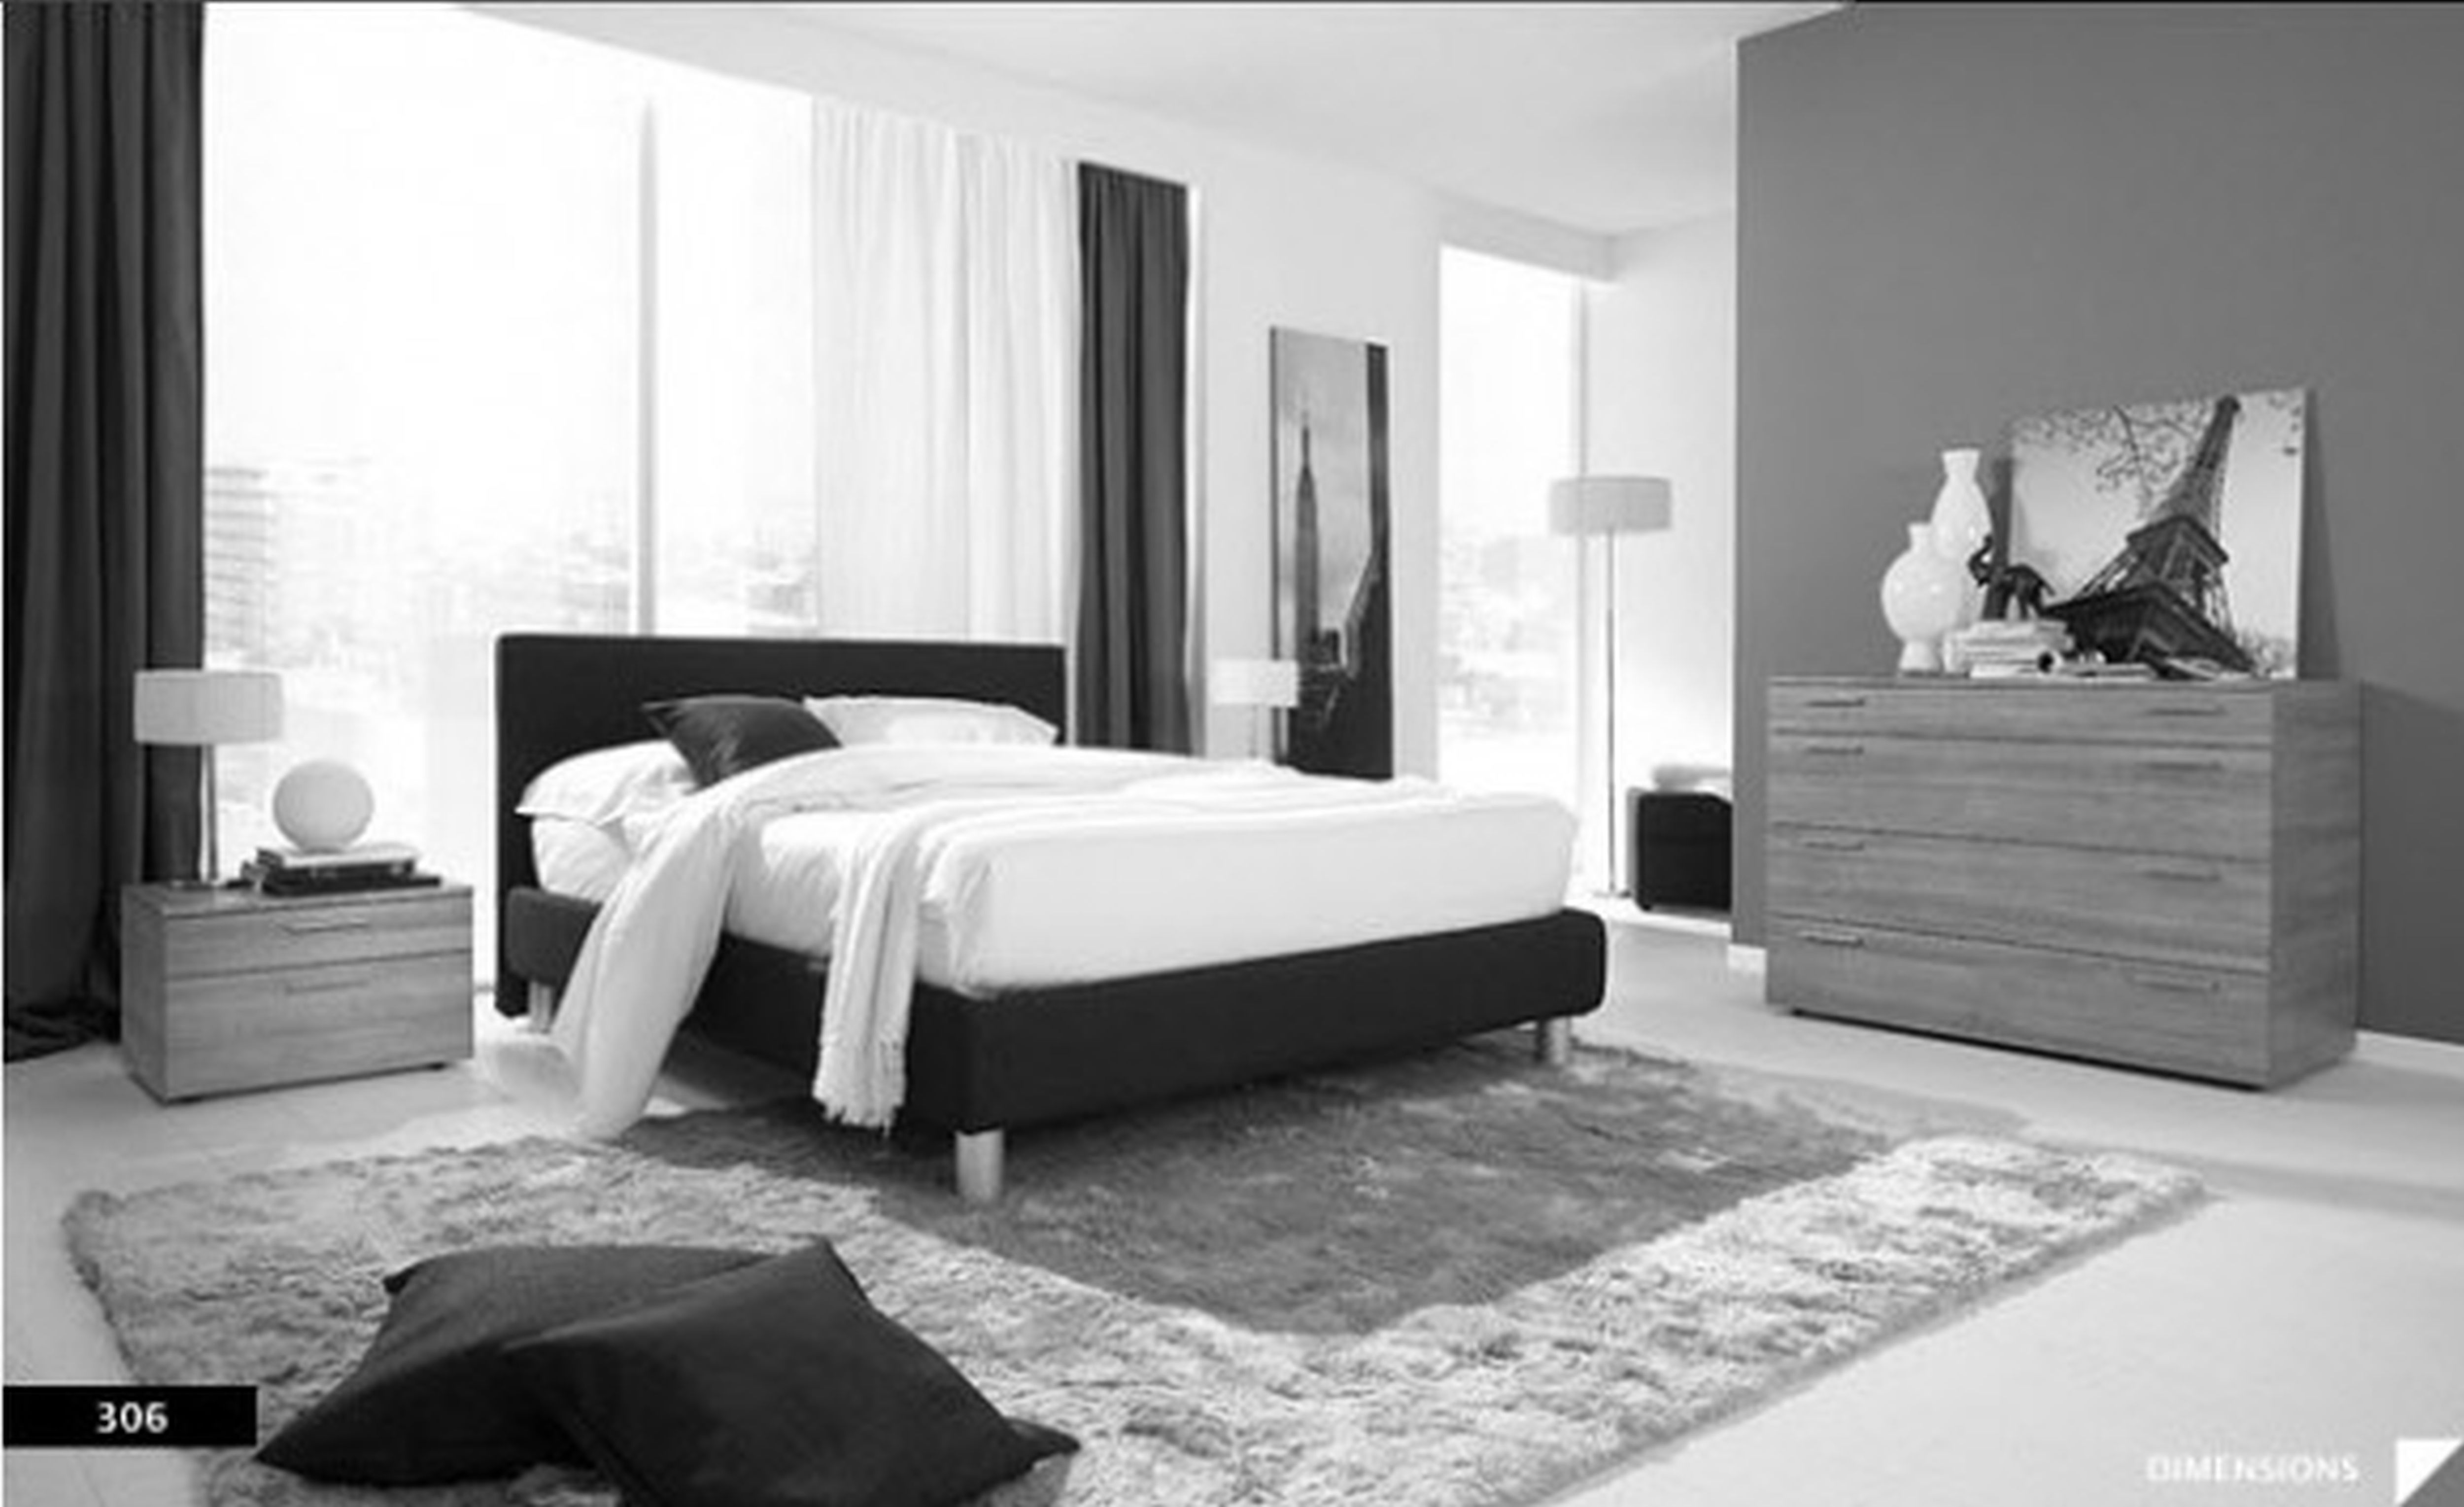 Furniture Interior Furniture Design Ideas Black And Modern Bedroom Interior Design Grey Bedroom Set Bedroom Design Styles Bedroom Interior Modern Style Bedroom